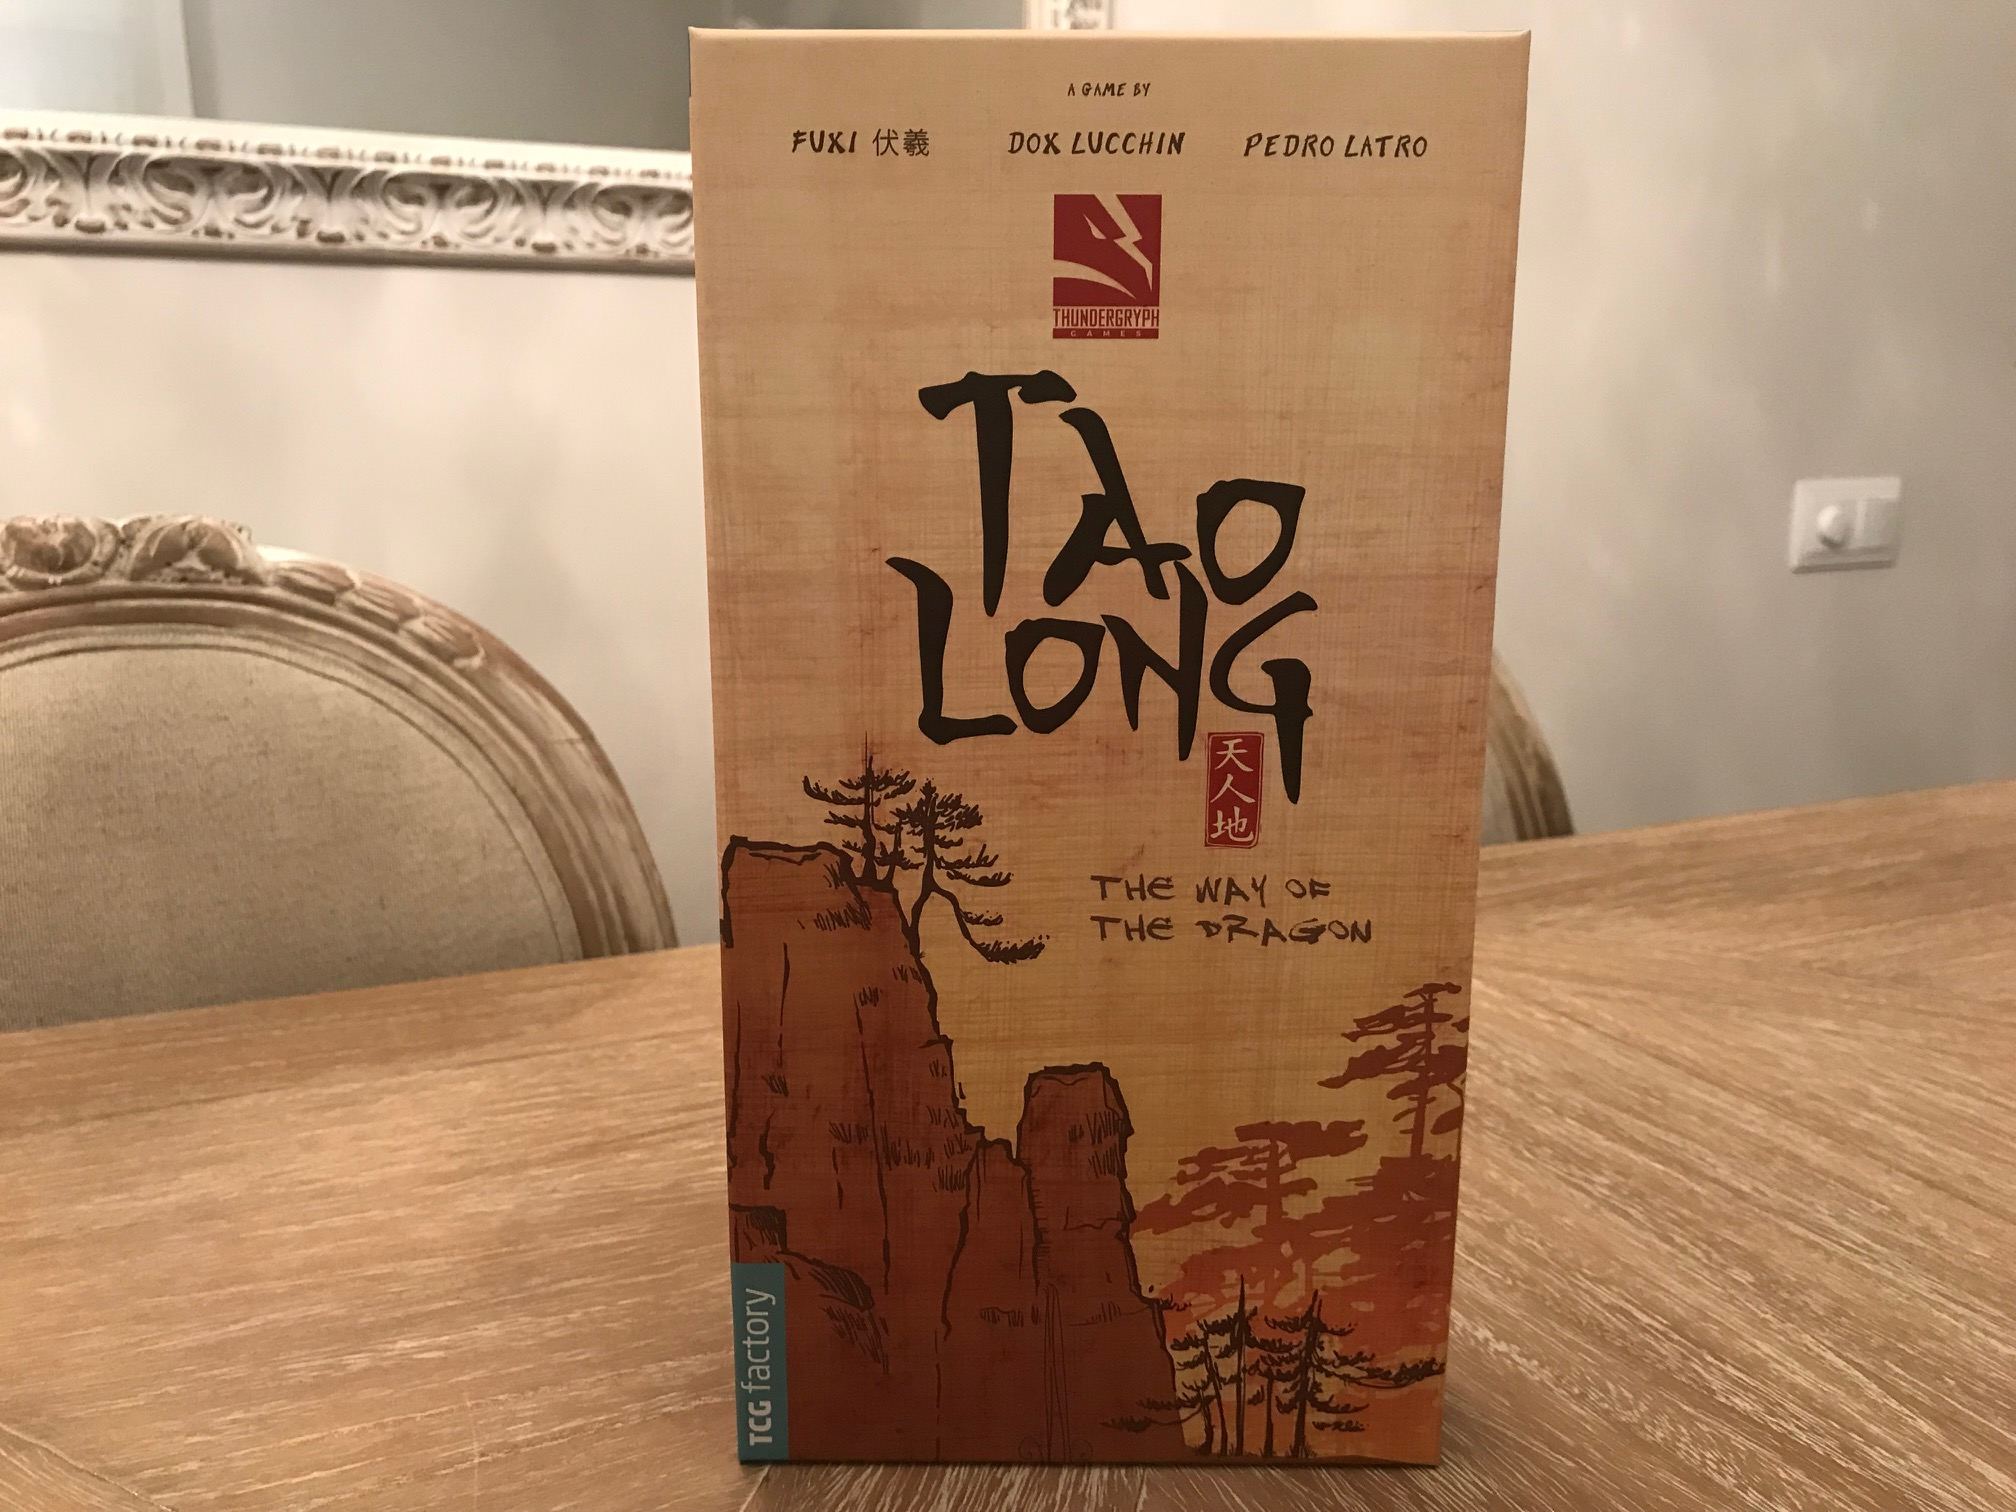 Hoy descubrimos… Tao Long. The way of the dragon